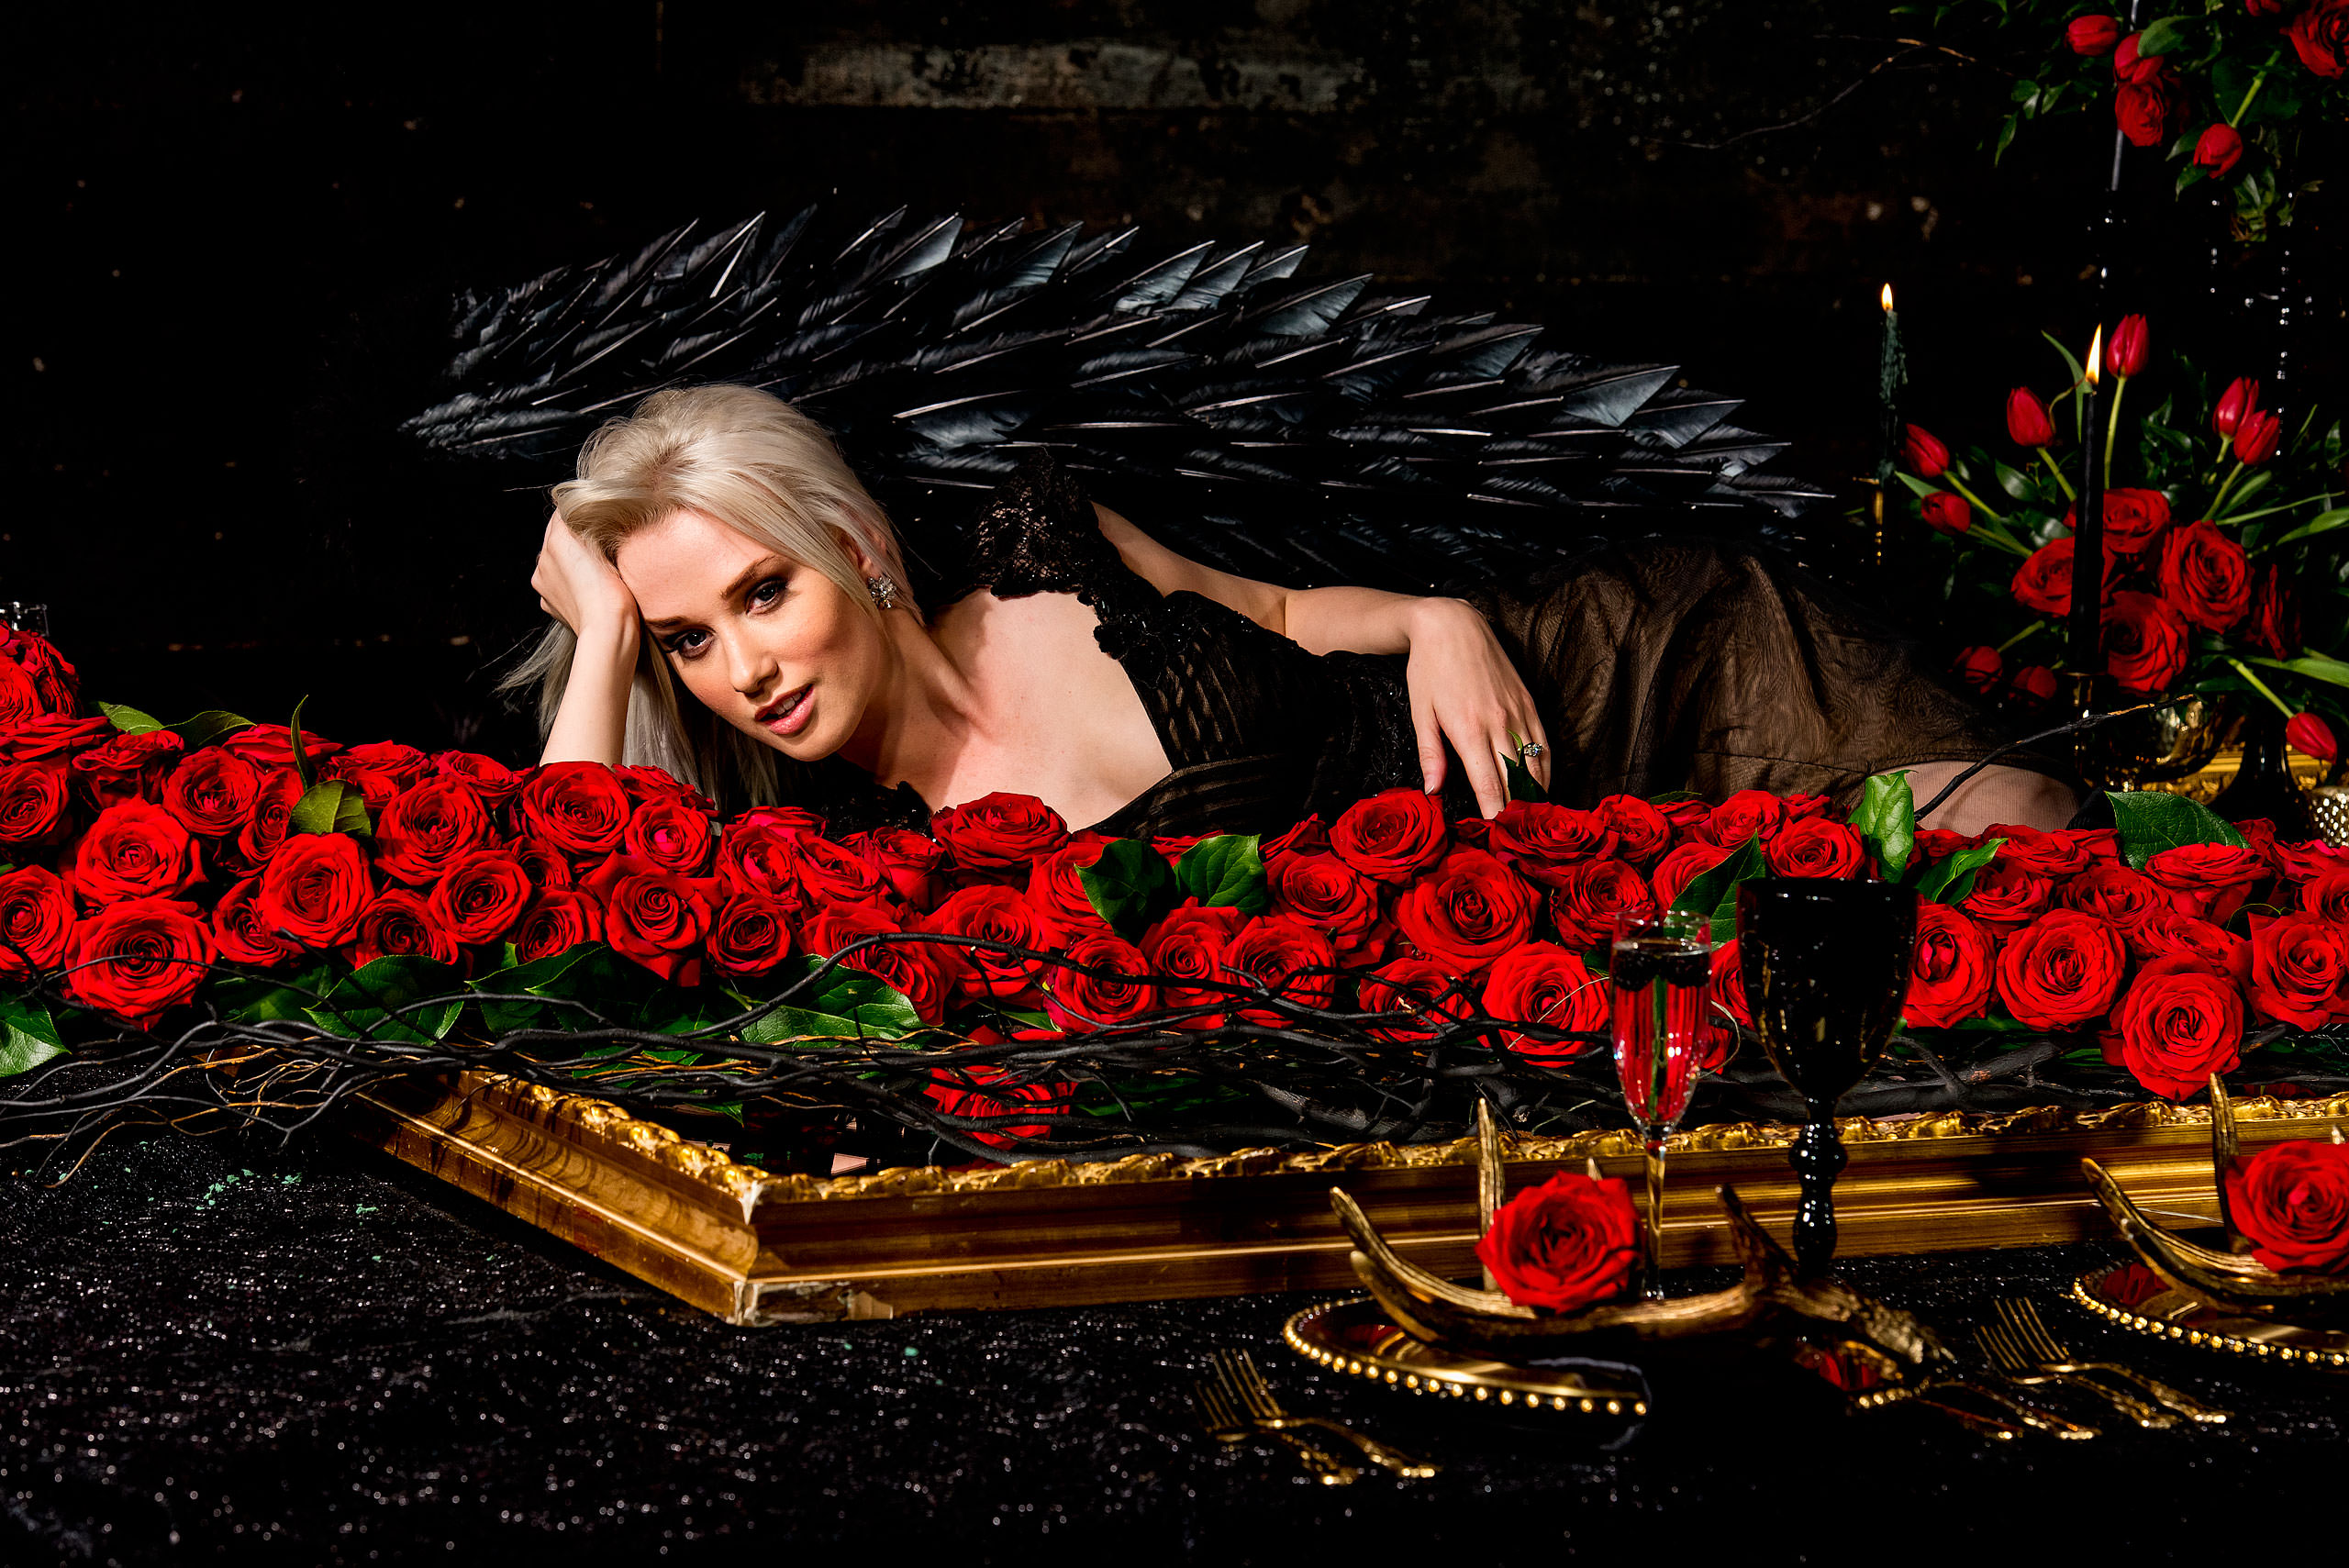 a model wearing wings laying behind roses by calgary confetti fashion photographer sean leblanc